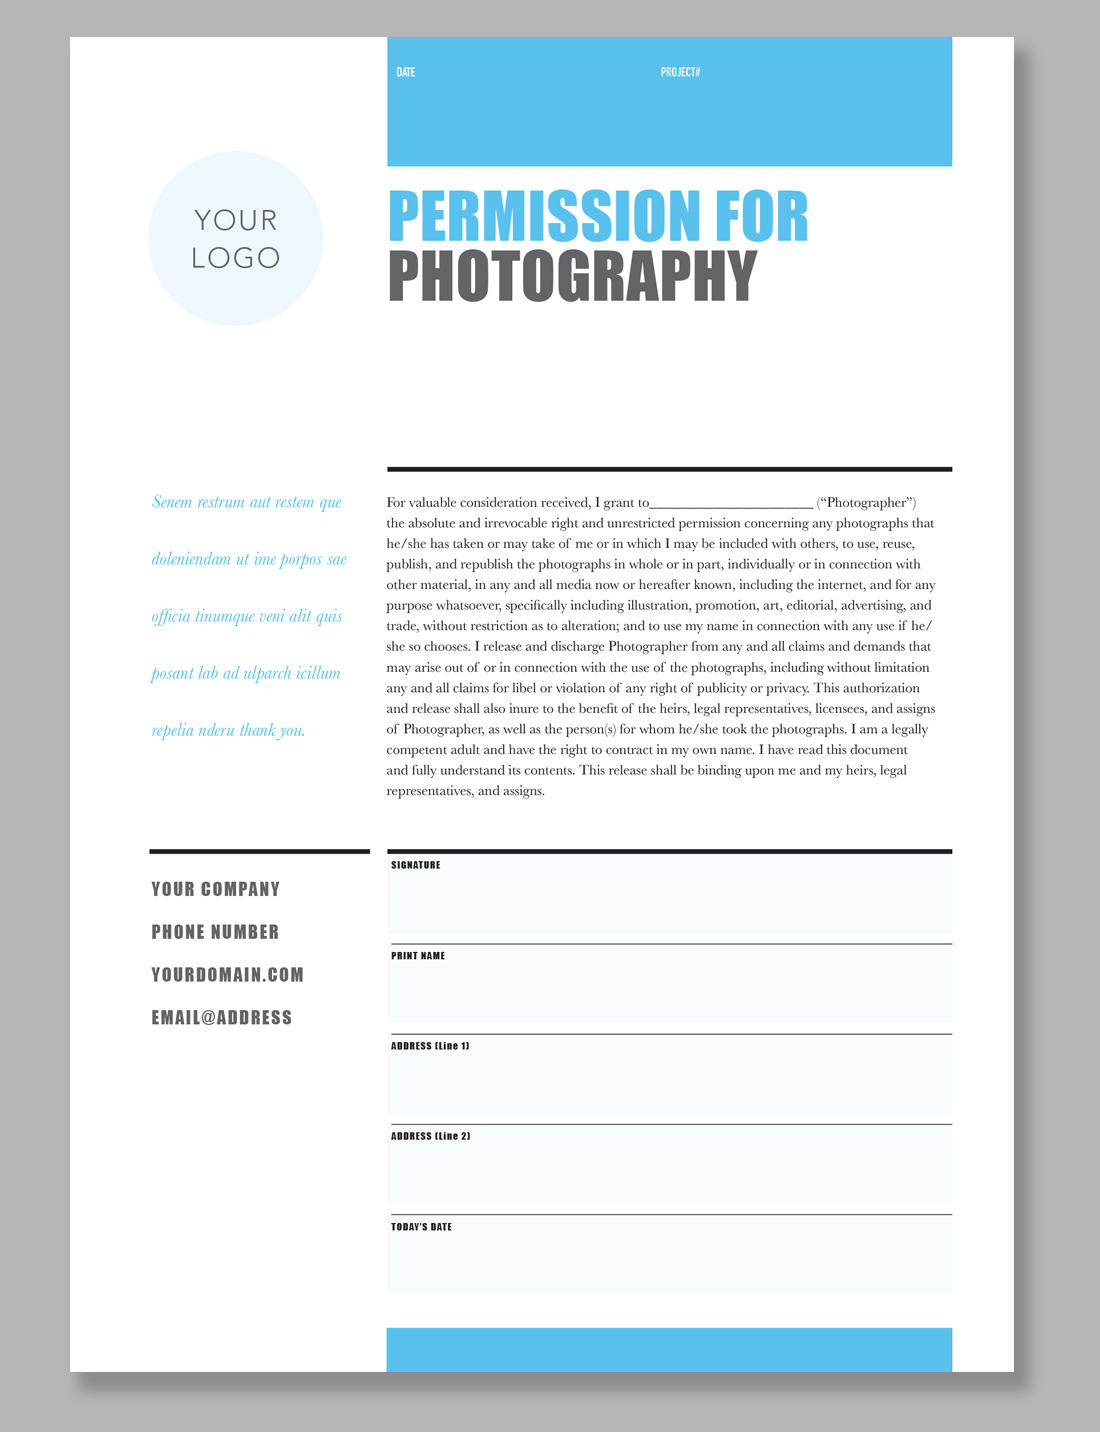 Superb Printable Photography Contract, Model Release, Permission Form